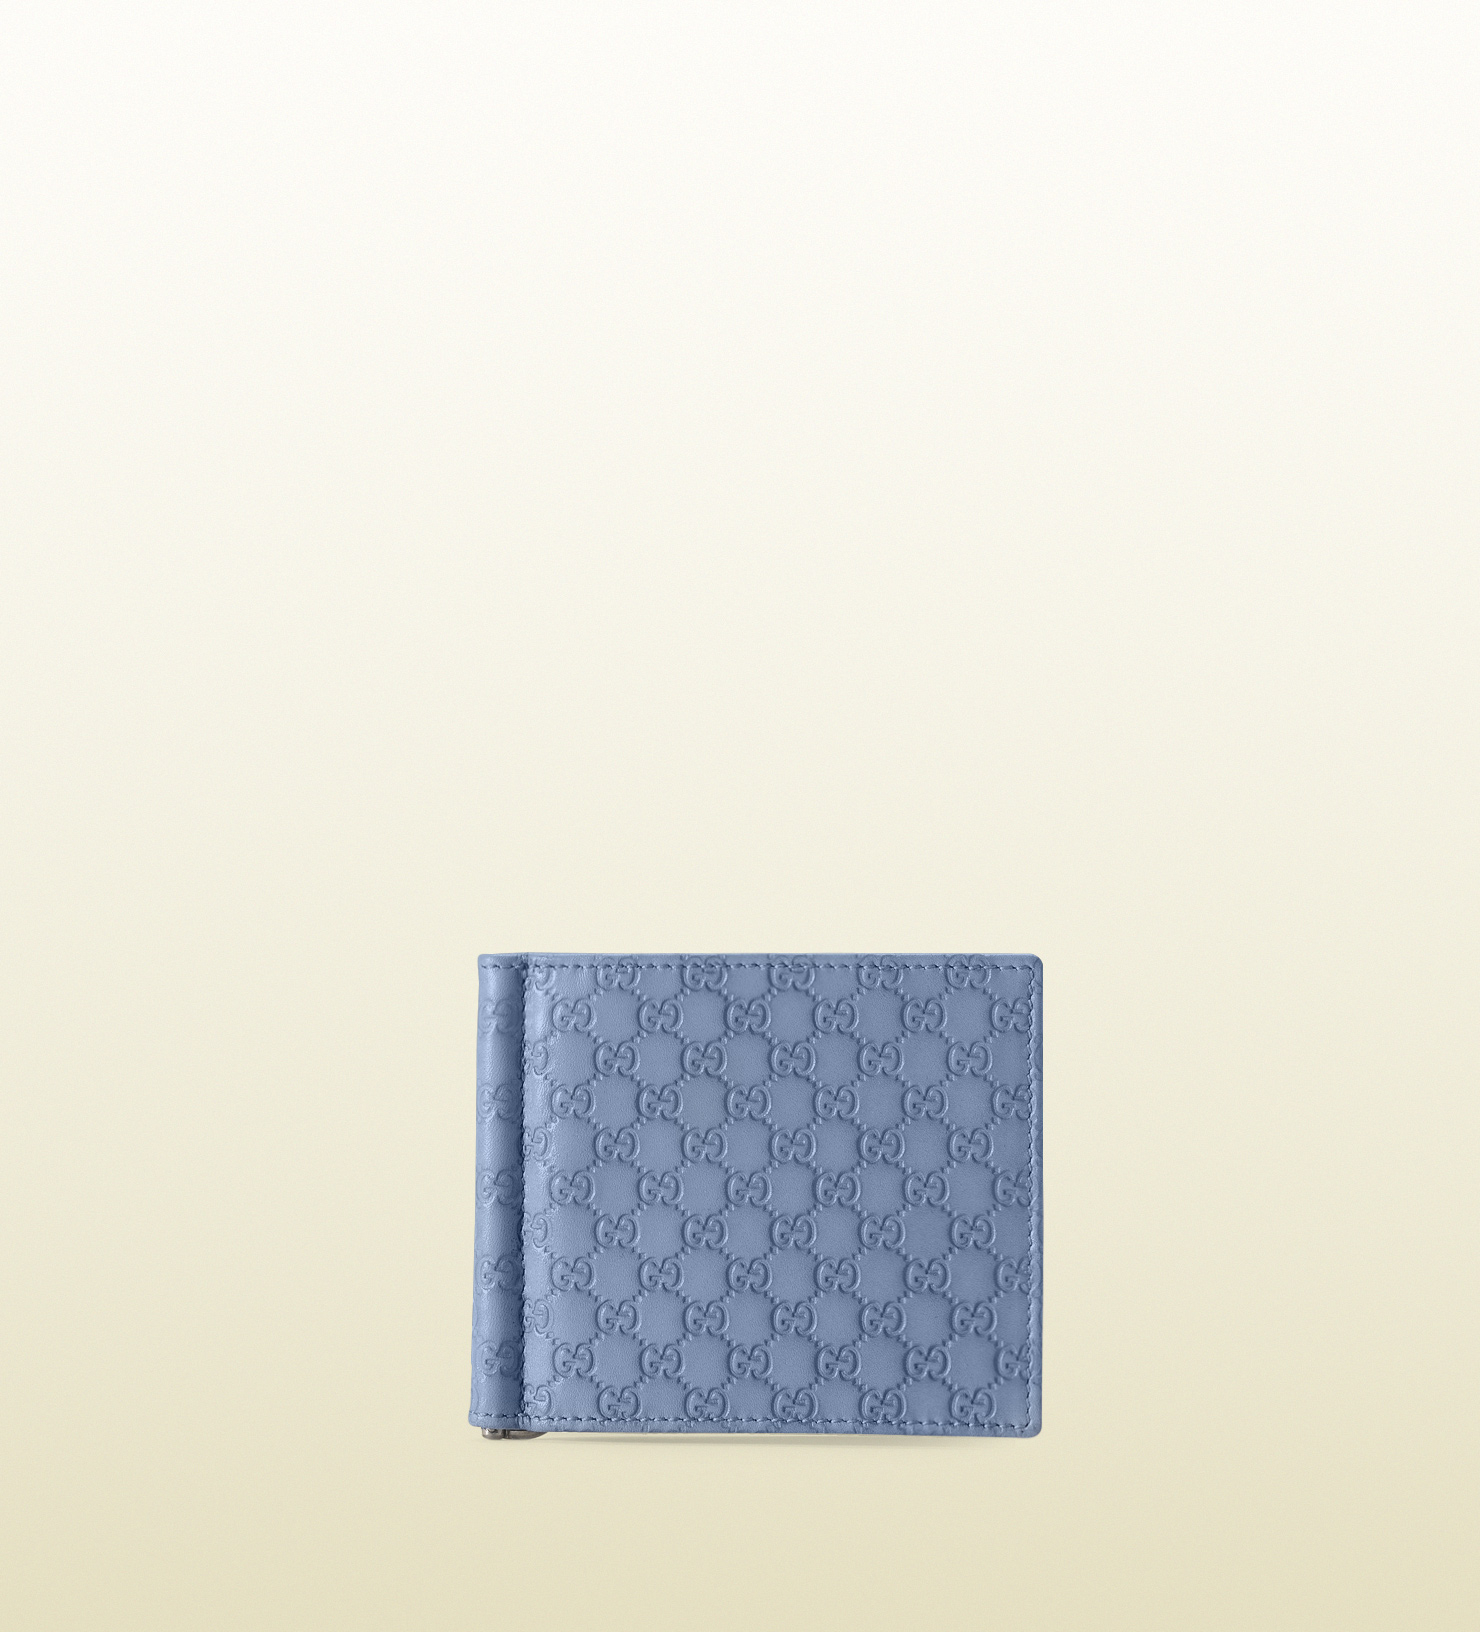 6cb2d5fd1220 Gucci Sky Blue Microguccissima Leather Money Clip Wallet in Black ...